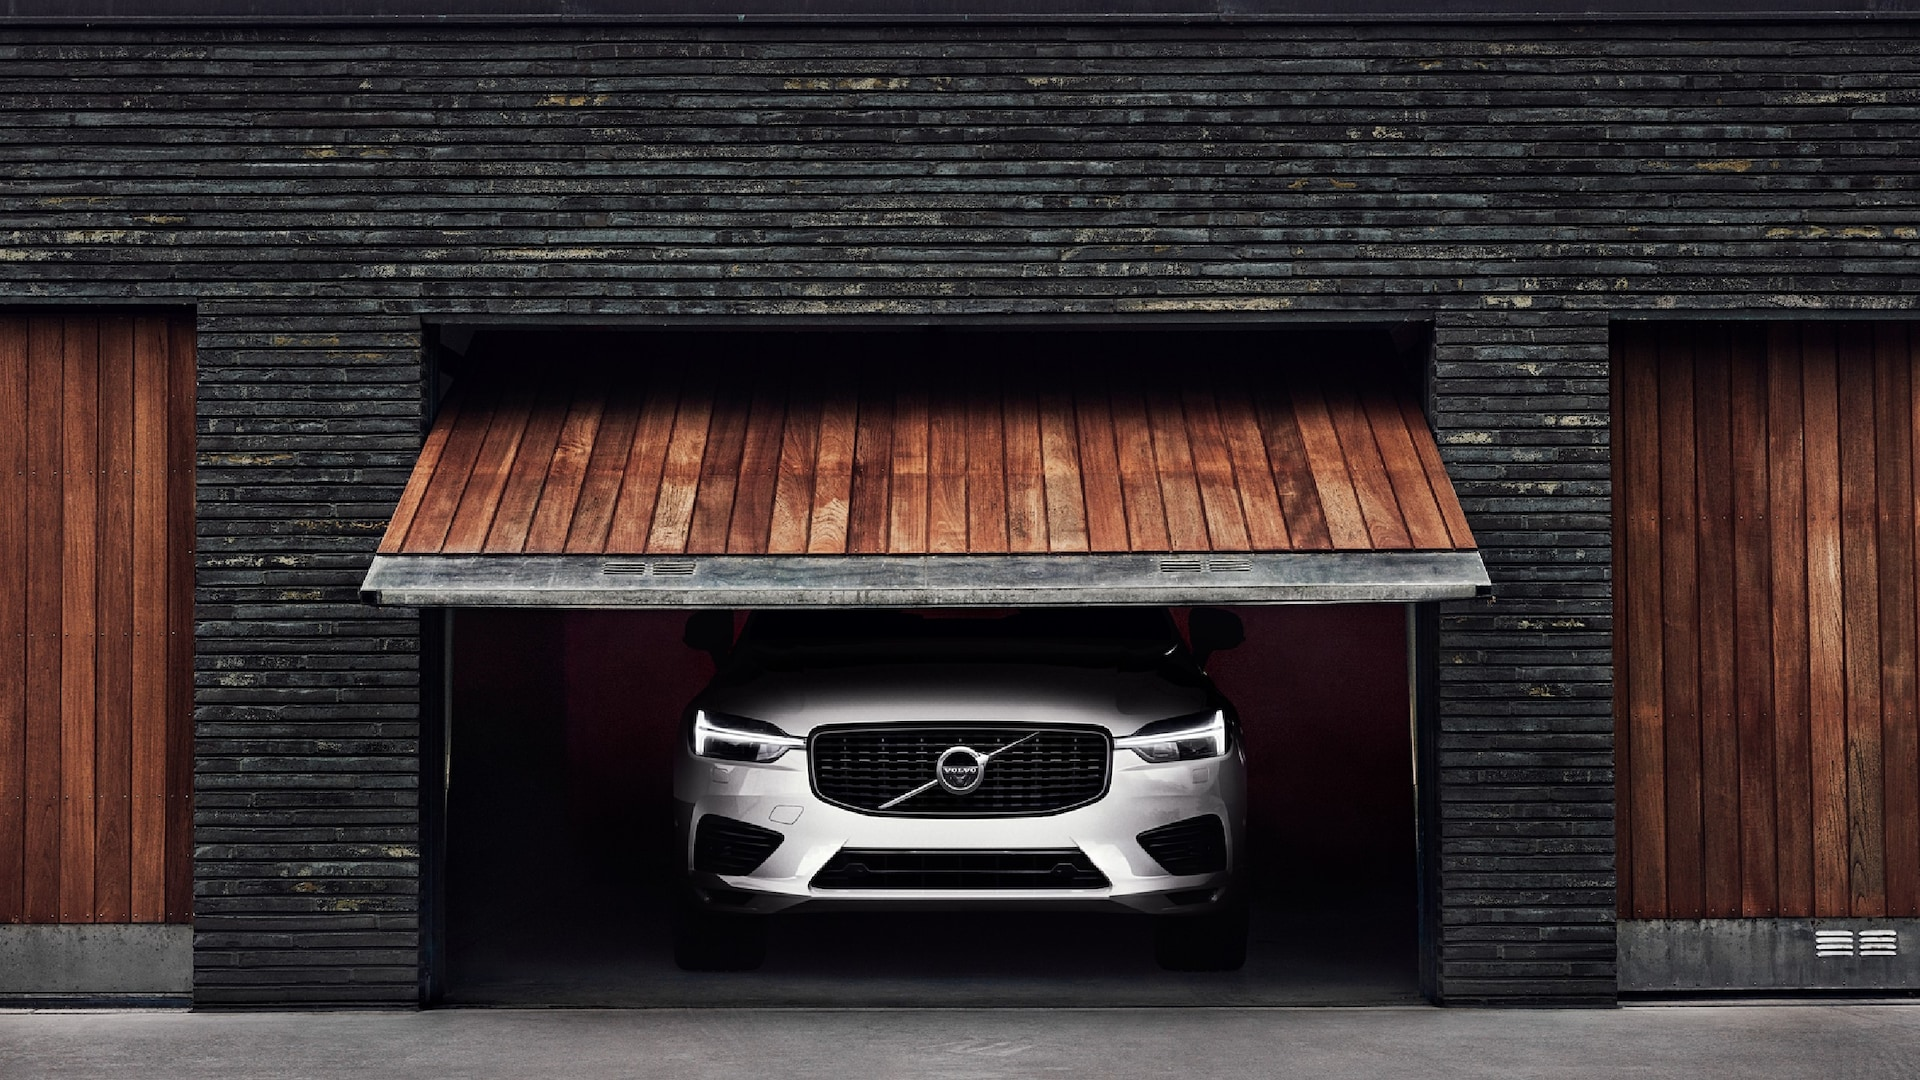 XC60 standing inside a garage, while the wooded front gate is opening.